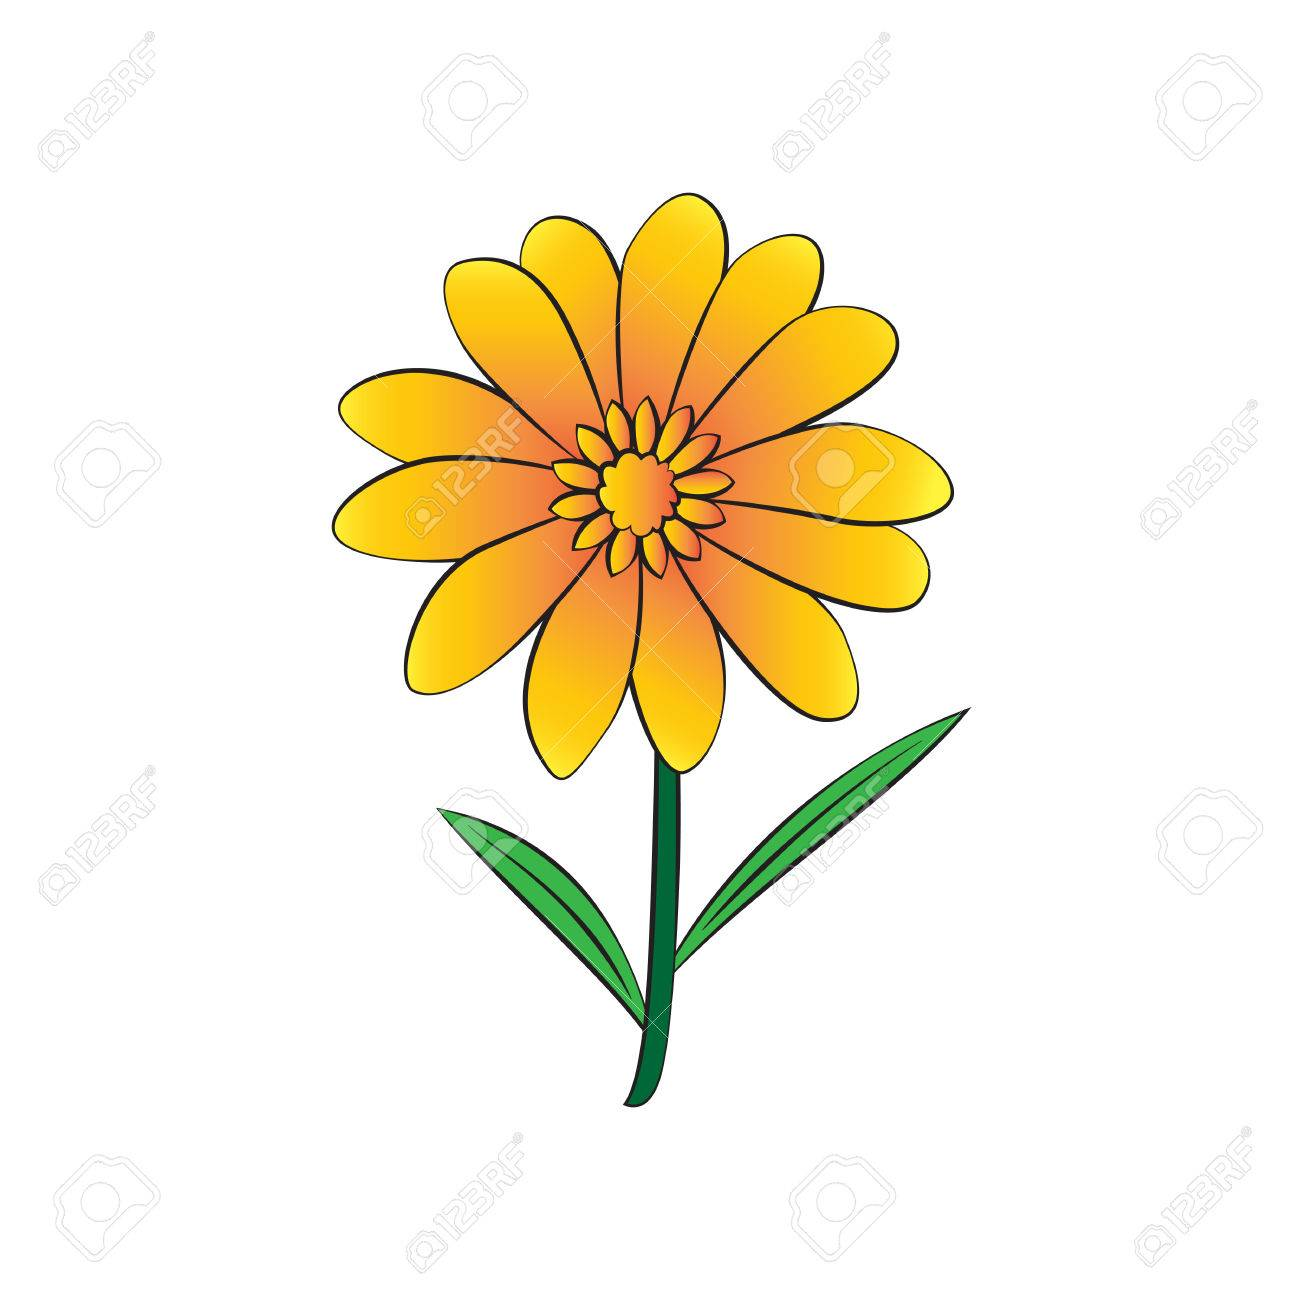 vector cartoon flower on white background royalty free cliparts rh 123rf com cartoon flowers images cartoon flowers to draw